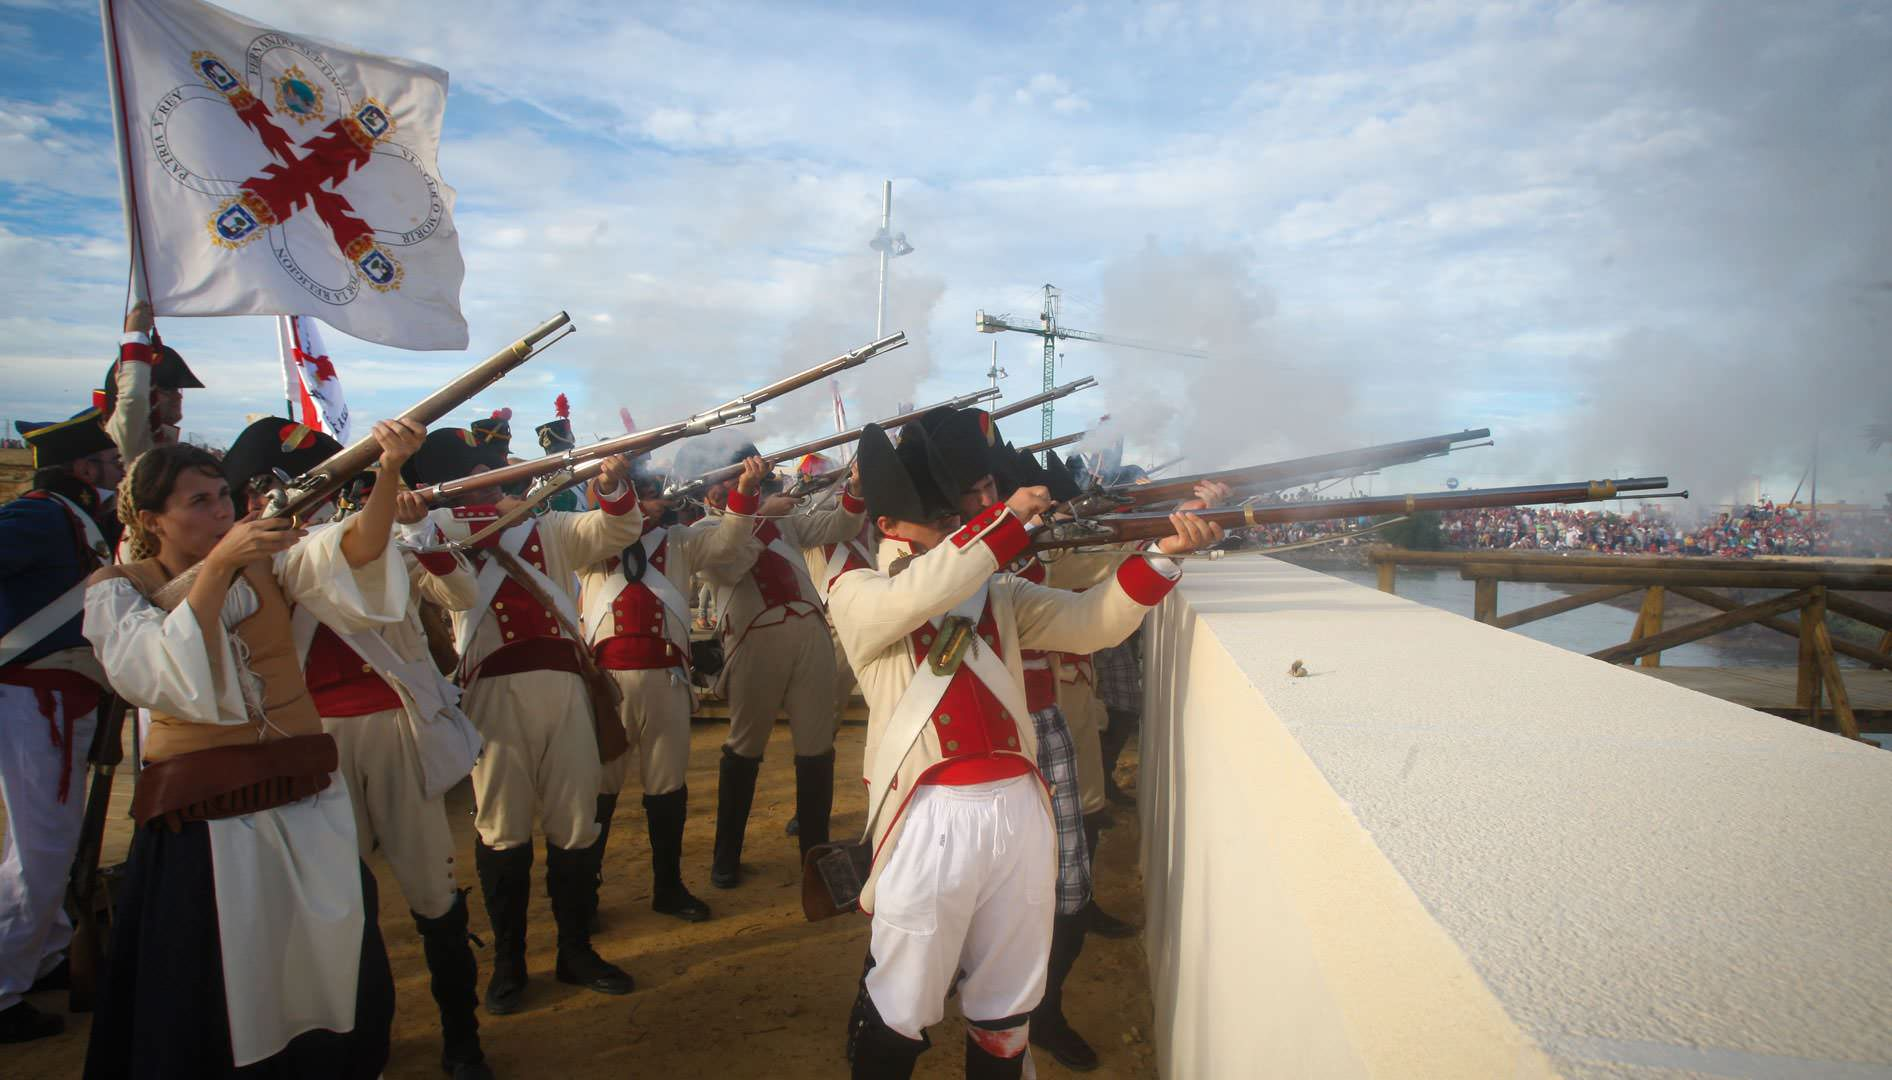 Recreation of the Battle of Trafalgar, which is celebrating it's 200th anniversary, as are the courts of the Isla de León (1810) and the Constitution of Cádiz (1812).